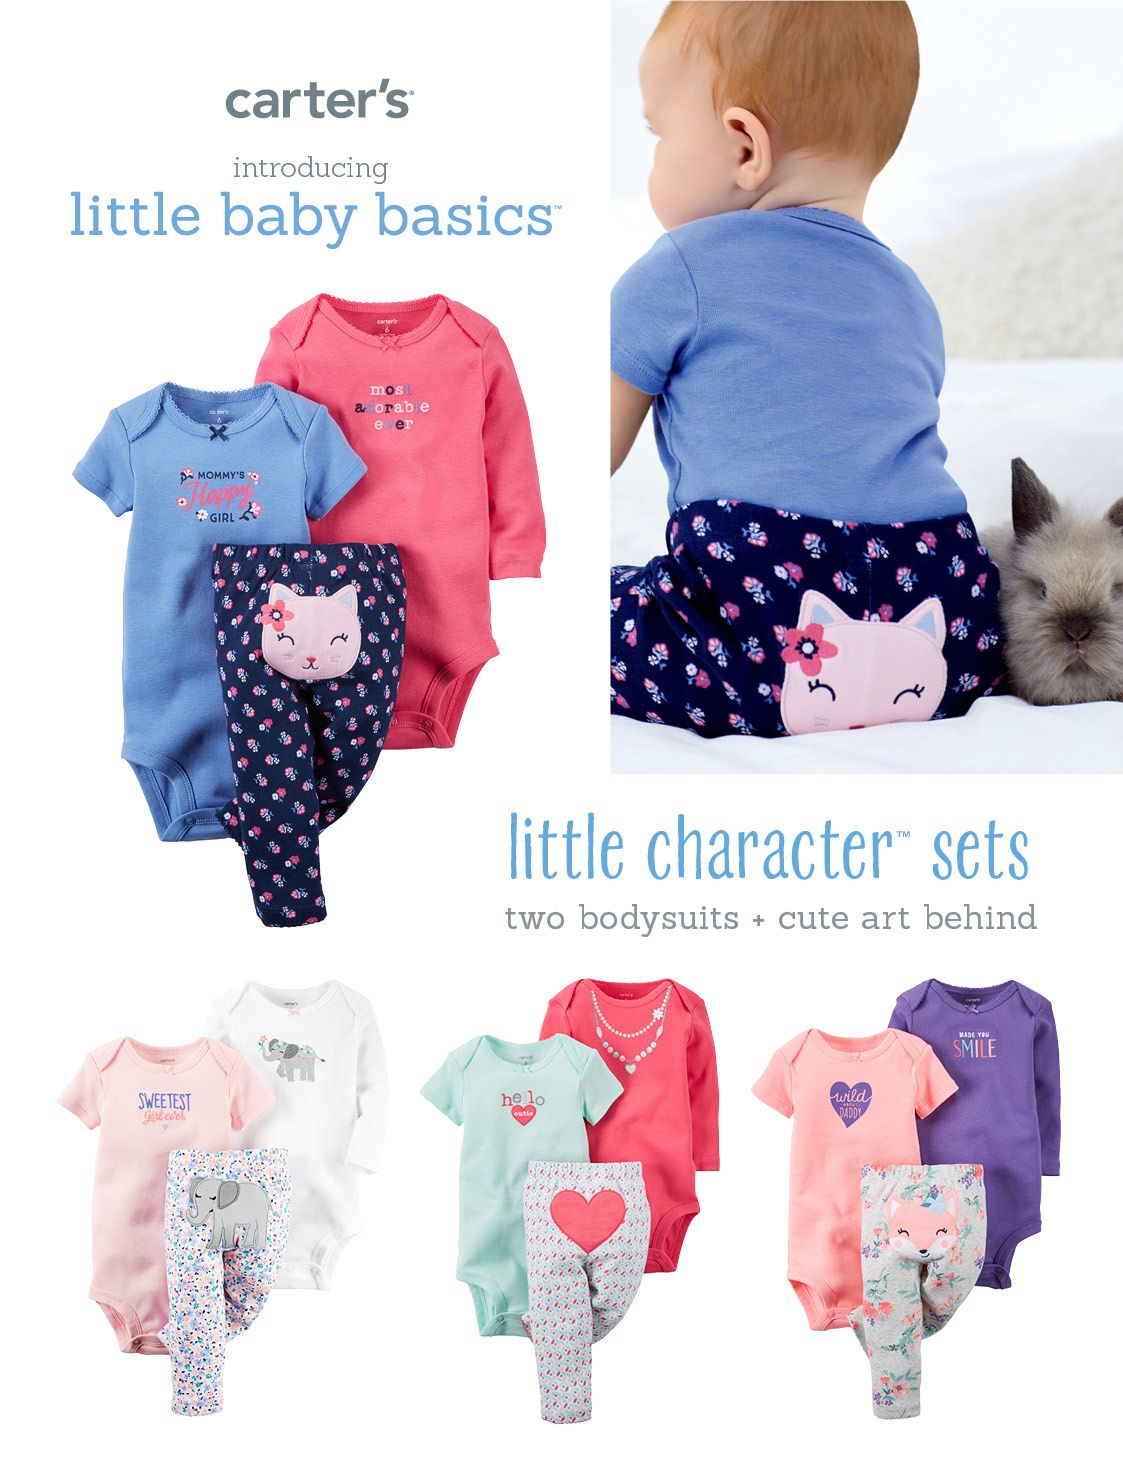 9e0cbd0d66 Shopping for your newborn girl? These little baby basics from Carter's are  durable enough to keep up with all her explorations. The sets make it easy  to mix ...